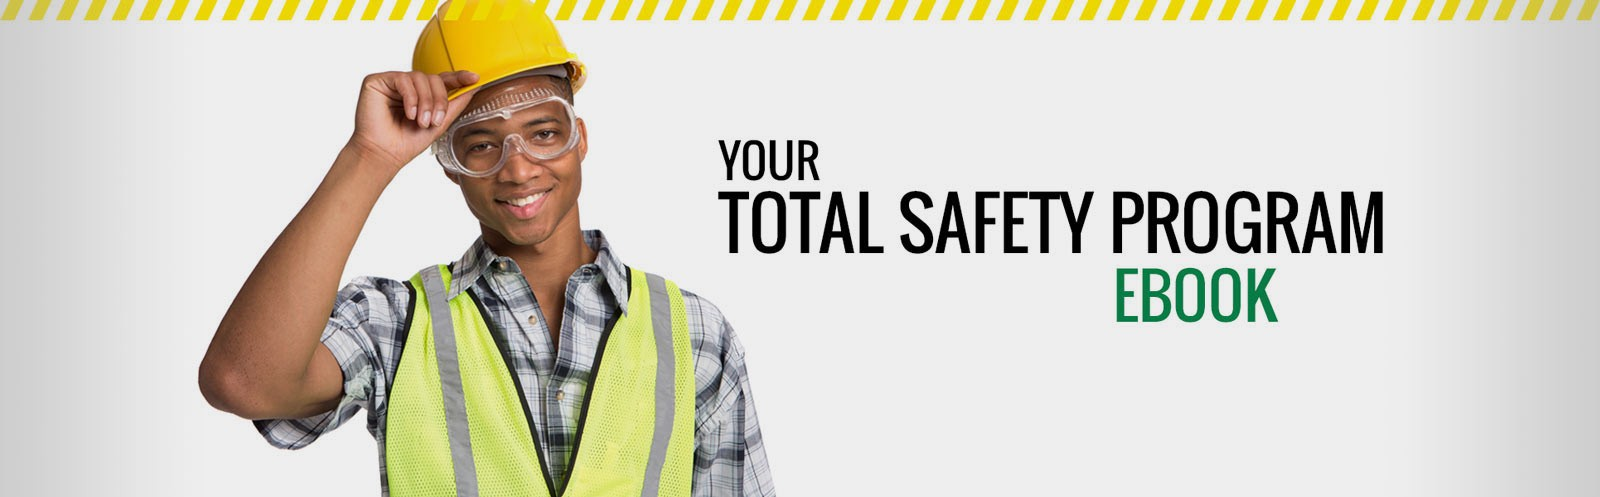 Total-Safety-Program-EBook-Banner